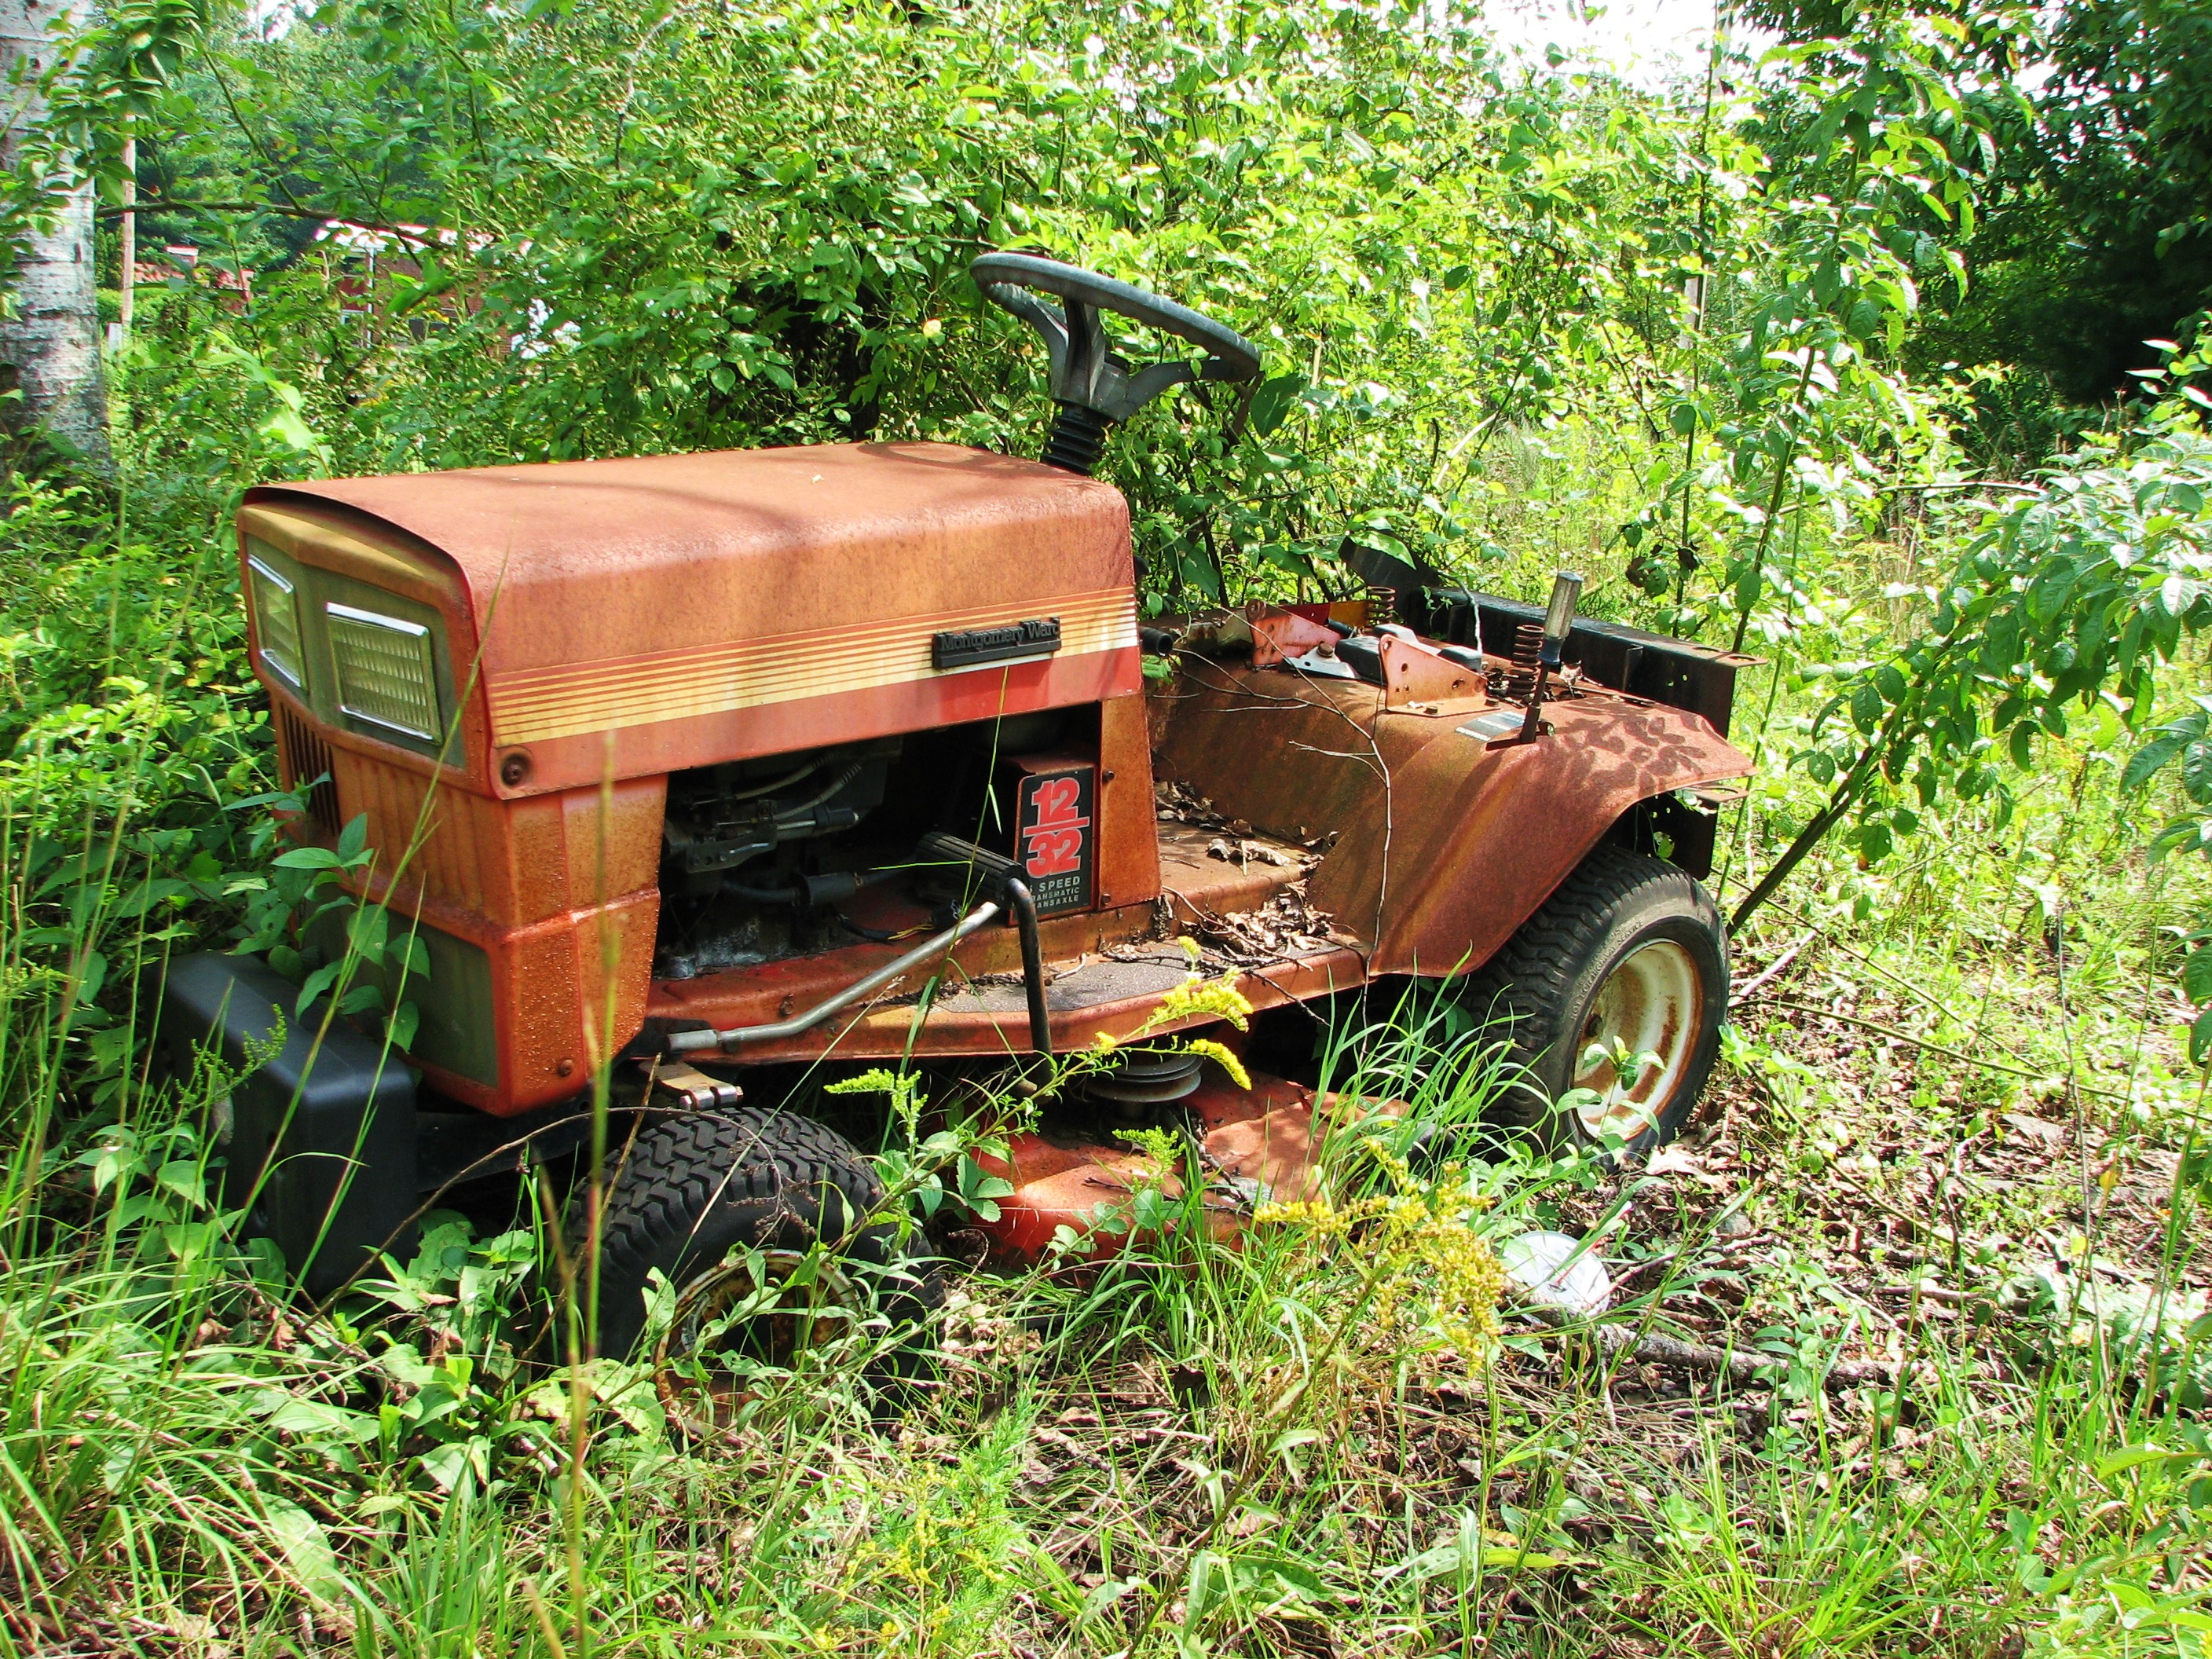 Ride on Mower abandoned to nature | Hardware/ Farm Supply ...